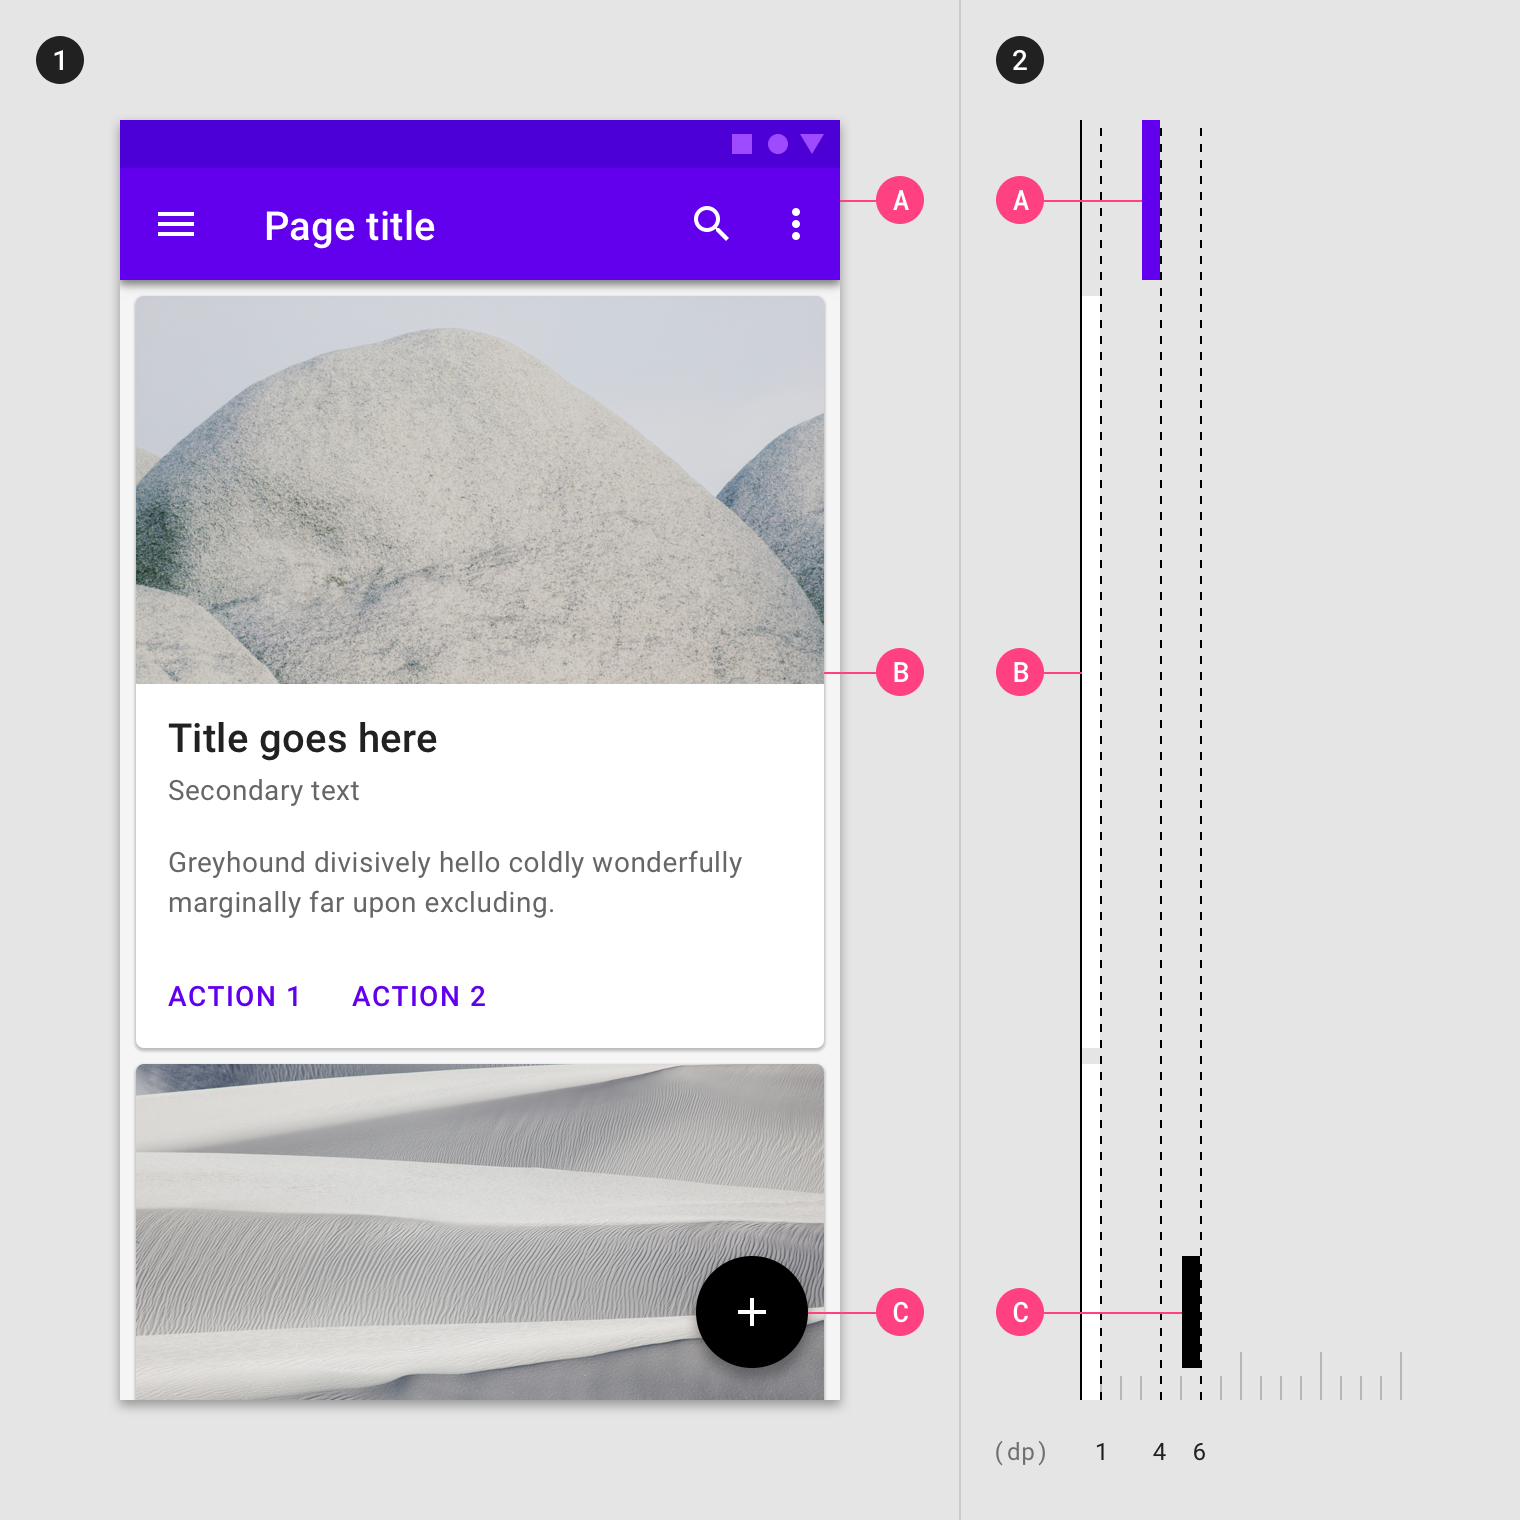 7 Rules for Creating Gorgeous UI (Updated for 2019)